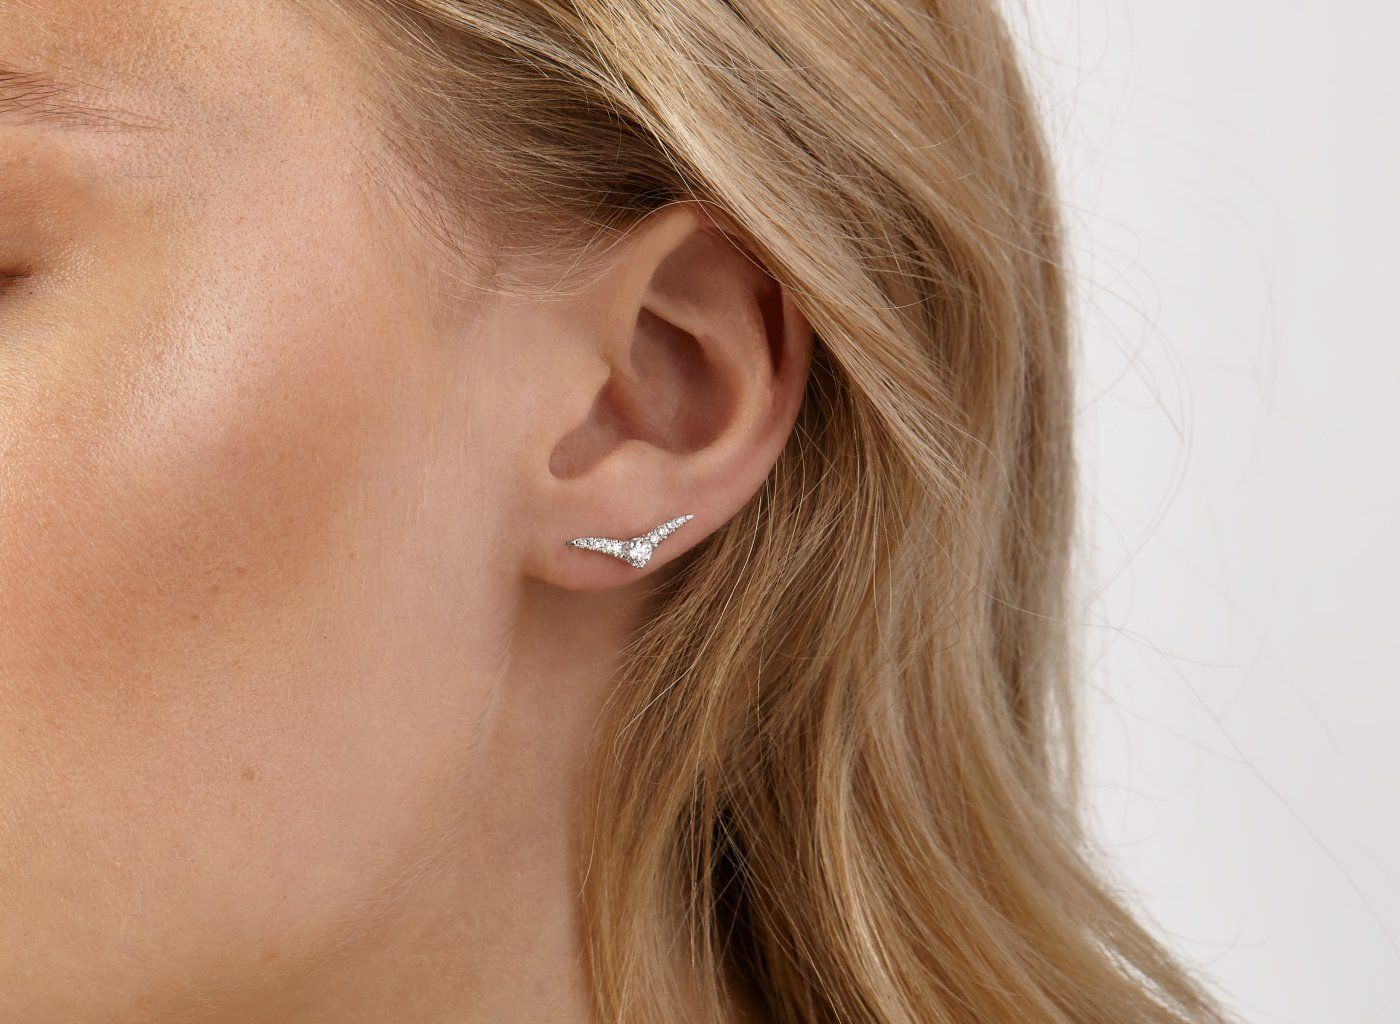 On Model View Pave Chevron 1 4 Carat Earring With White Diamonds Small Silver Hoop Earrings Sterling Silver Hoops Silver Hoop Earrings